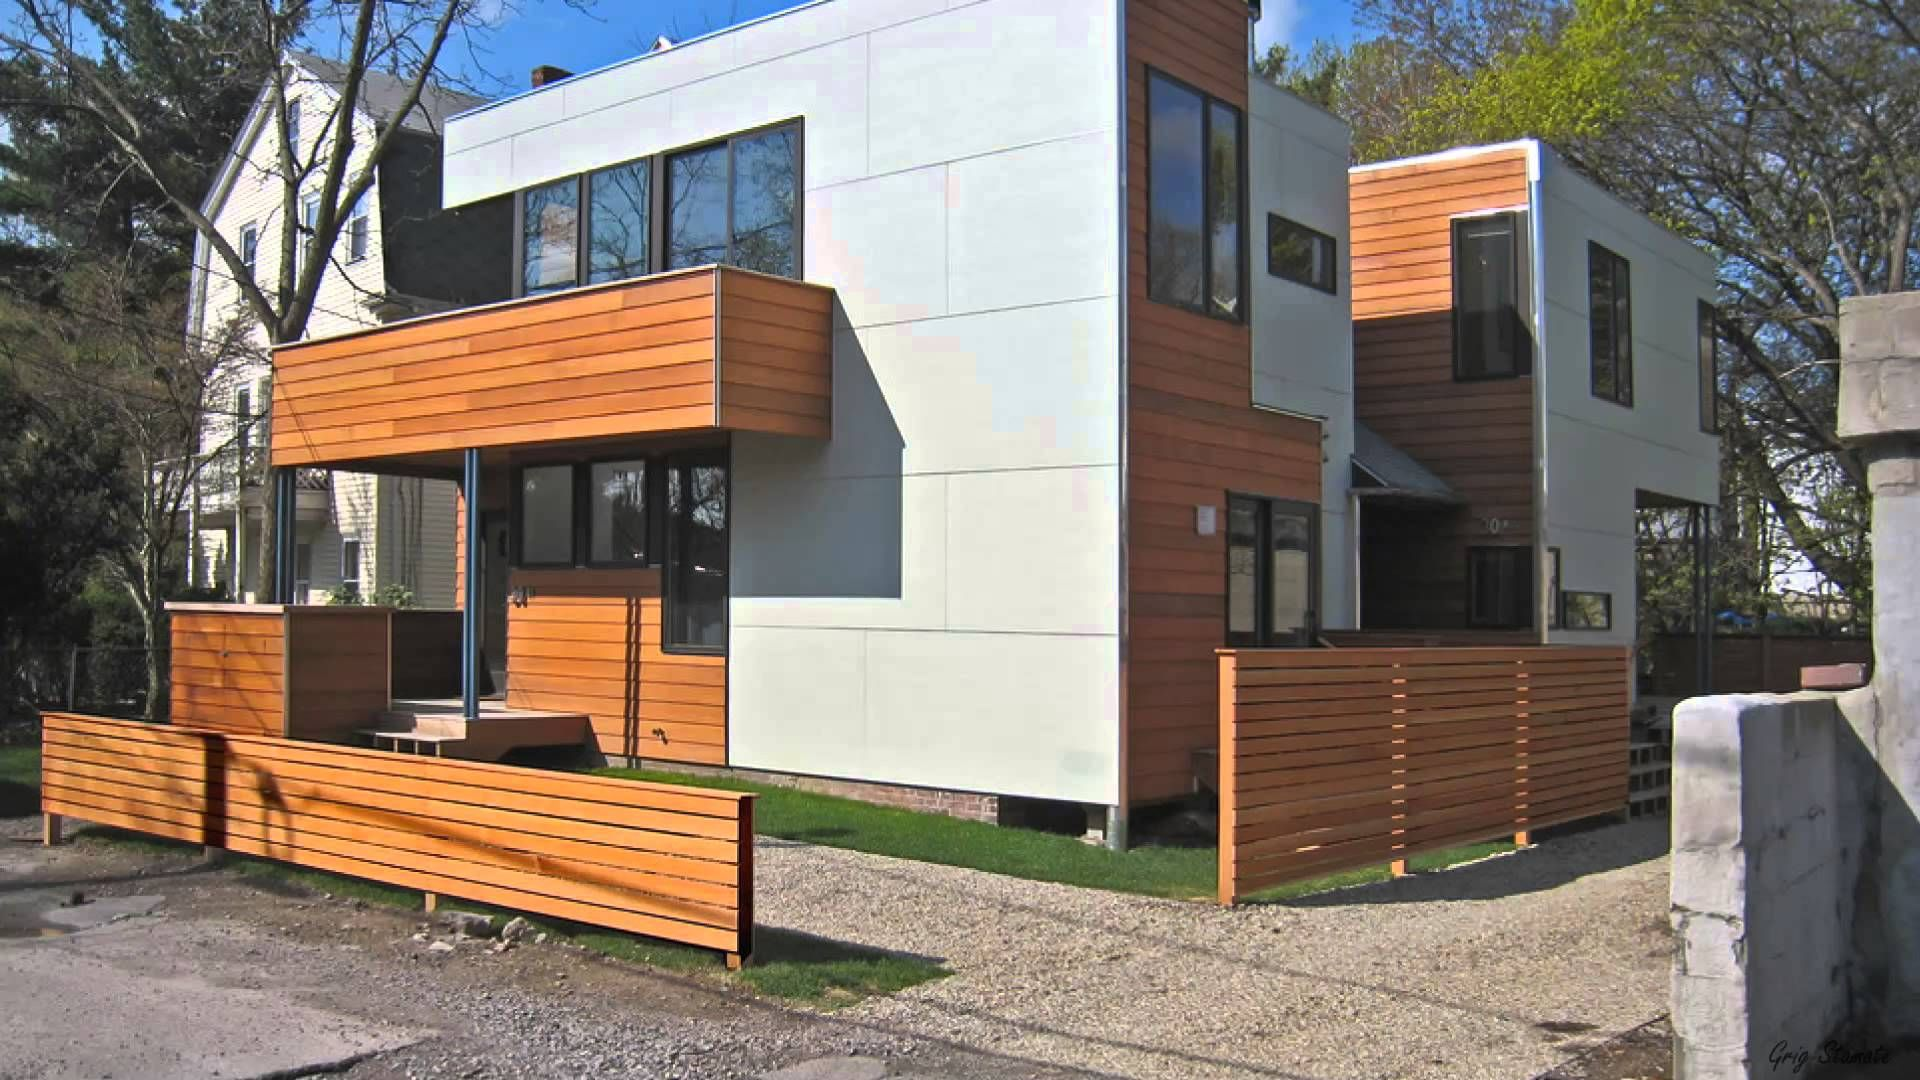 Fiber Cement Siding Right Choice for Modern Homes | House ...